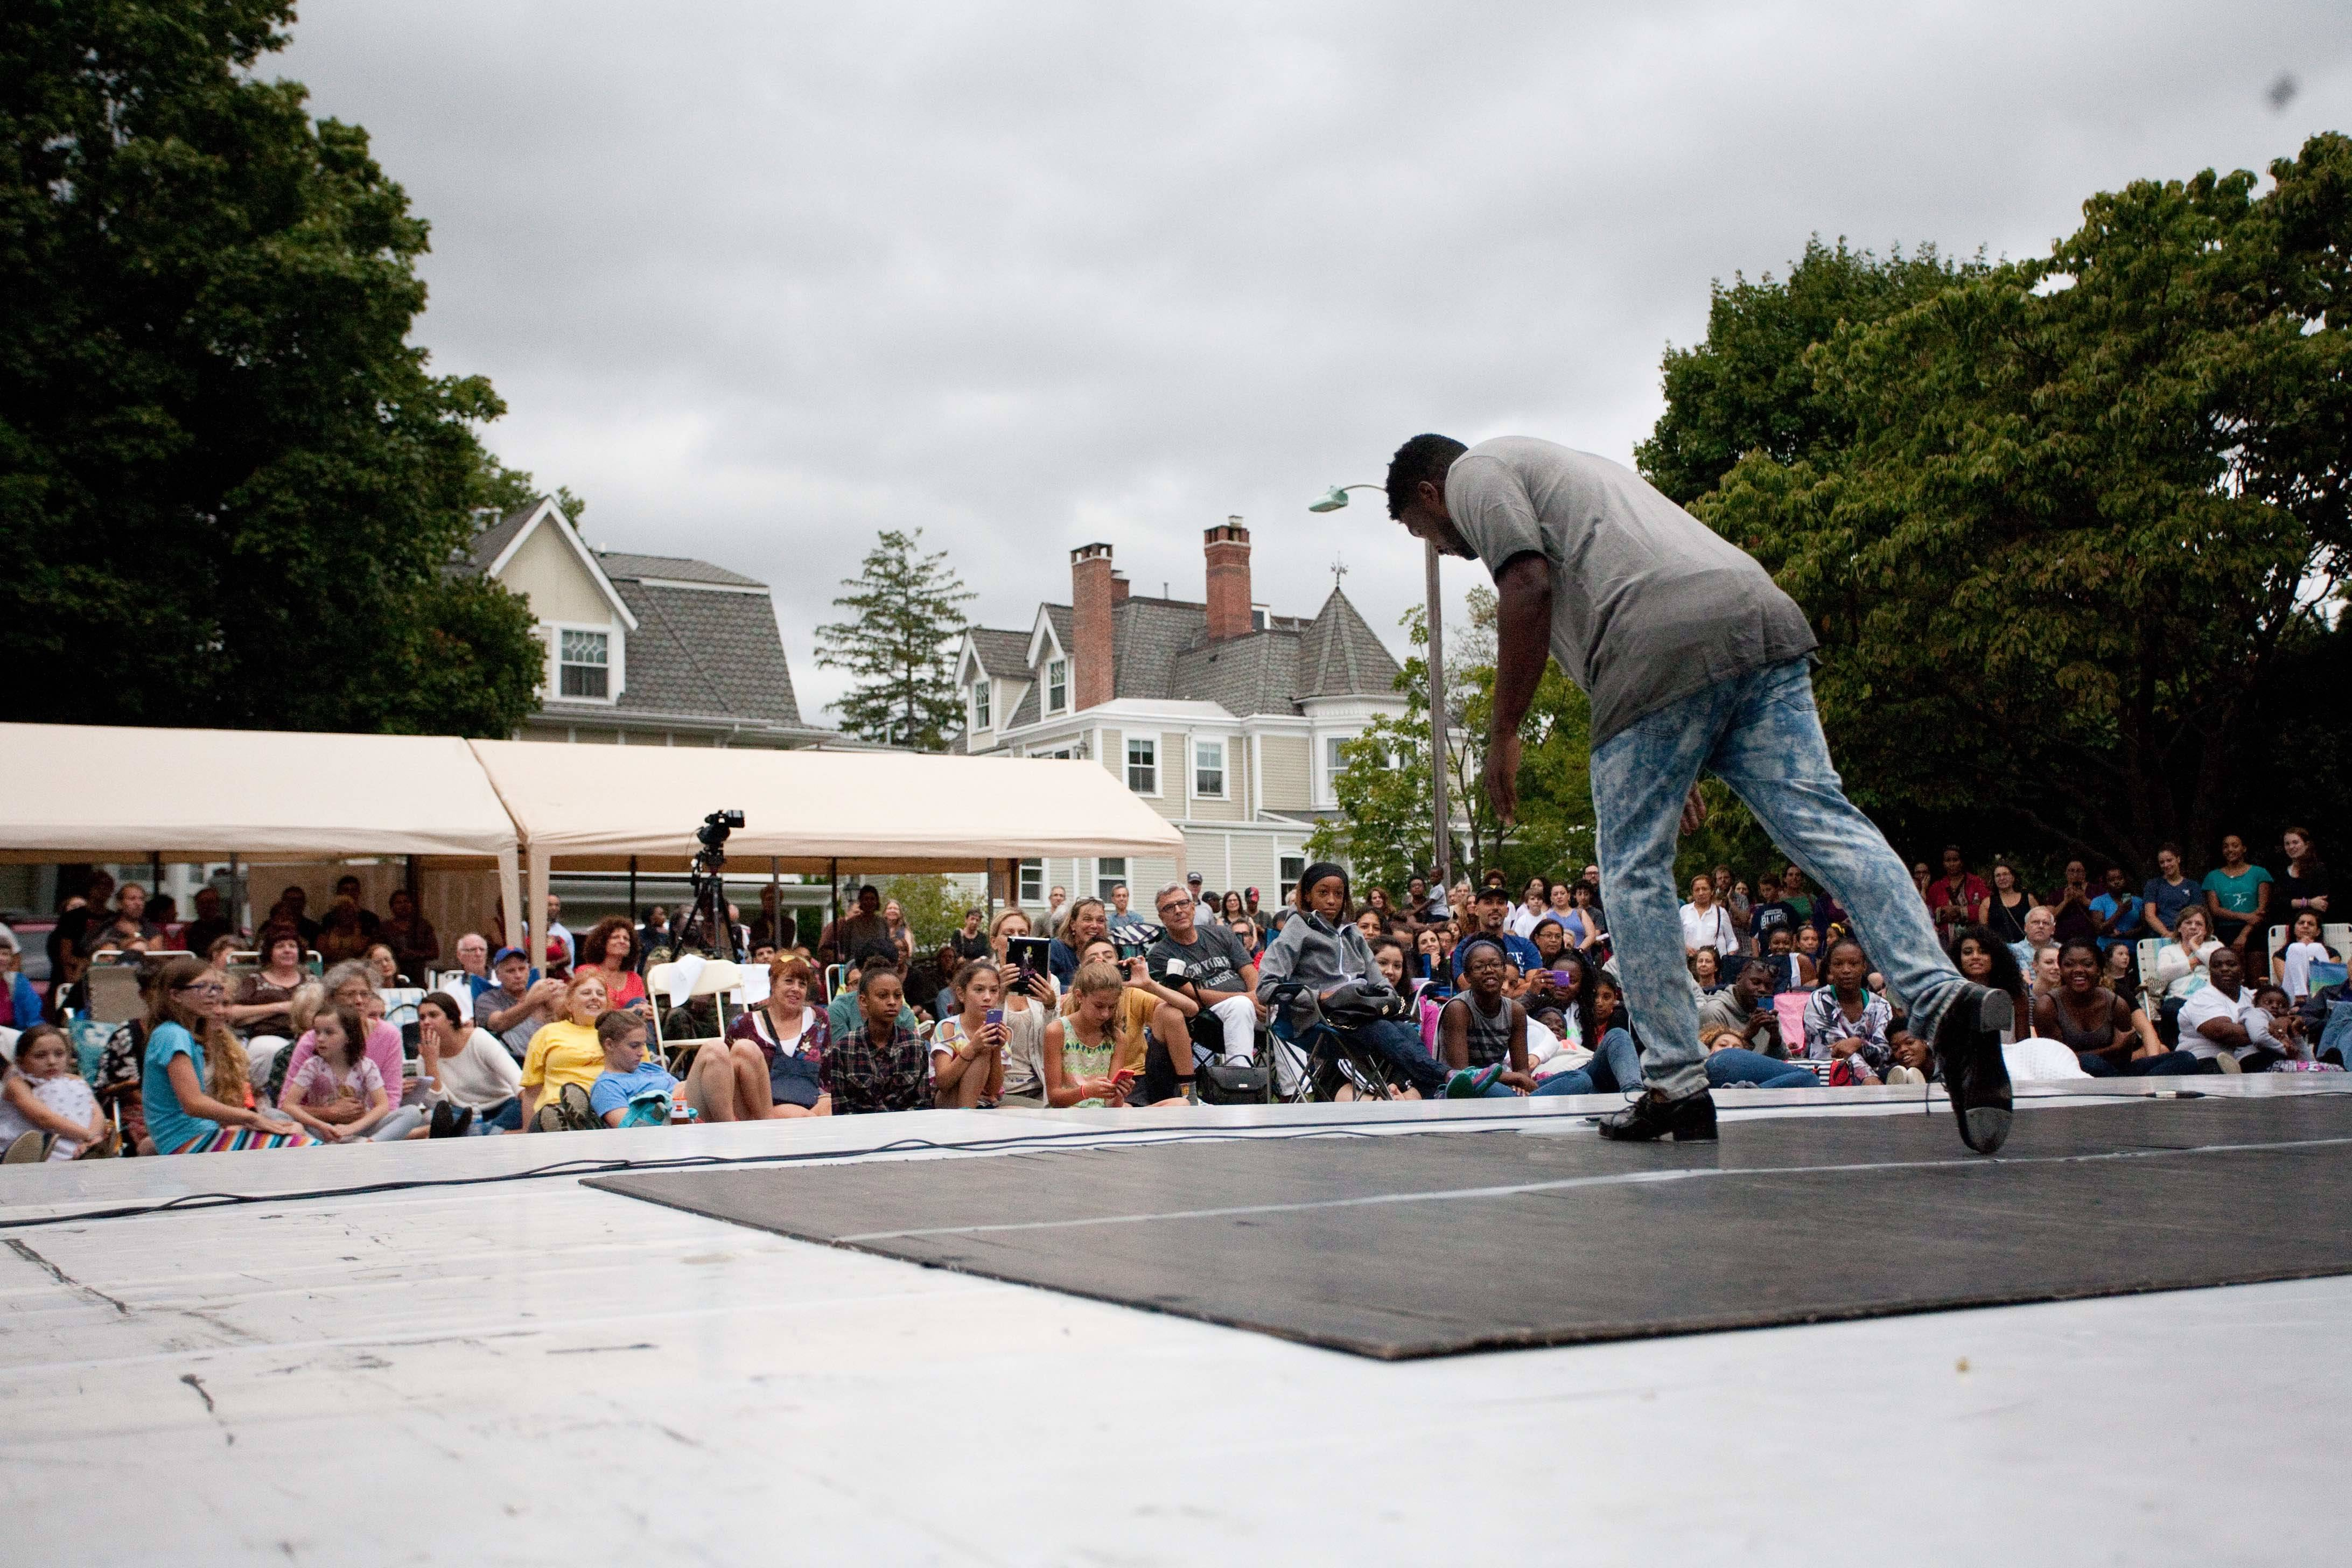 DANCE ON THE LAWN RETURNS TO MONTCLAIR - OUTDOOR DANCE FESTIVAL SEPT. 10 - FREE!